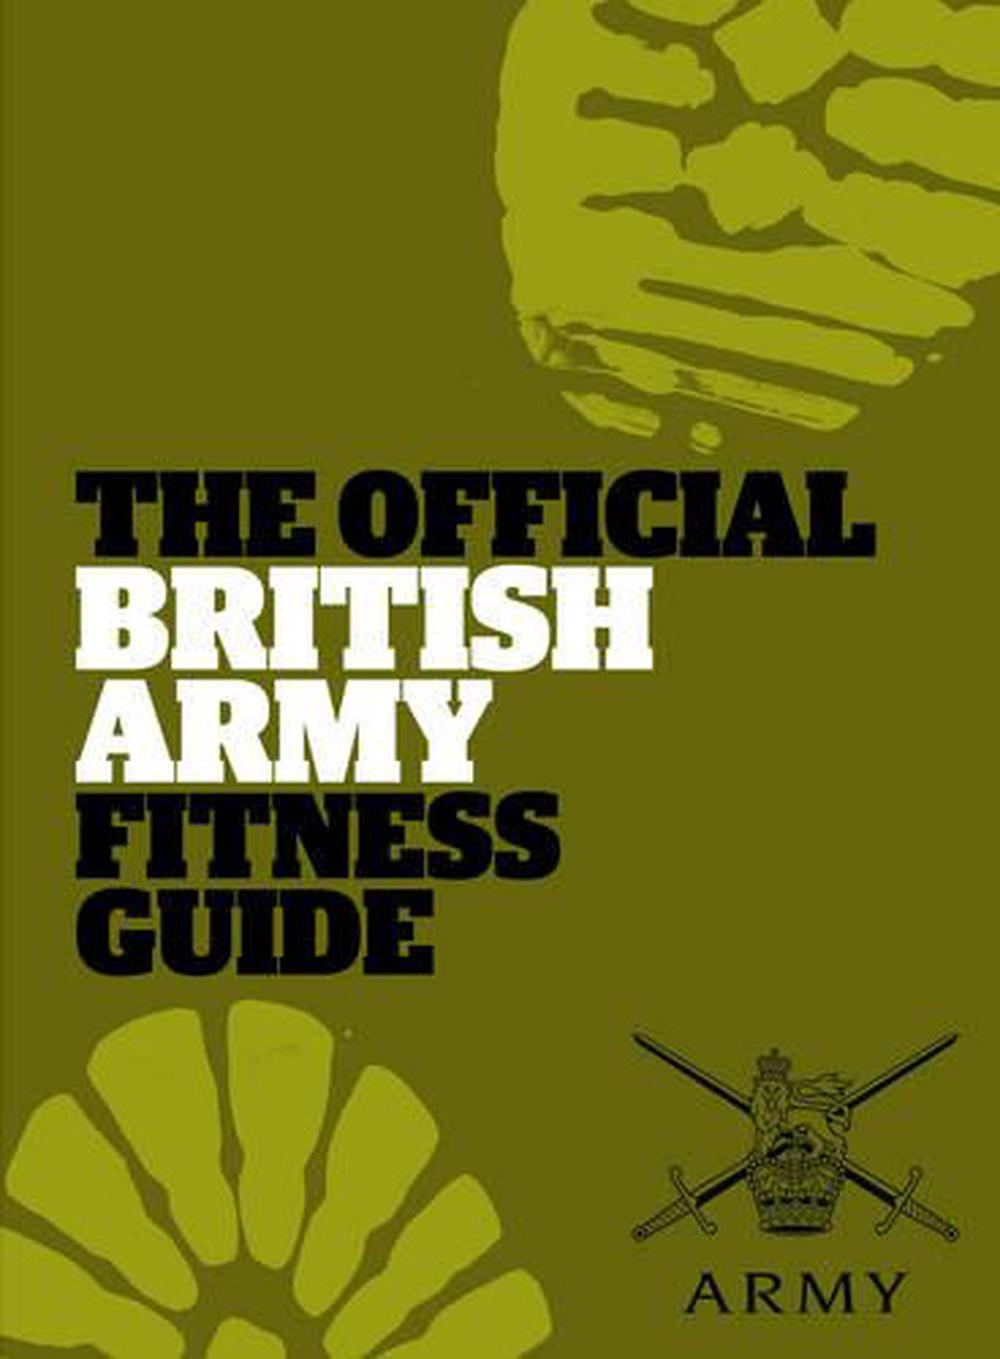 9780852651186: the official british army fitness guide abebooks.